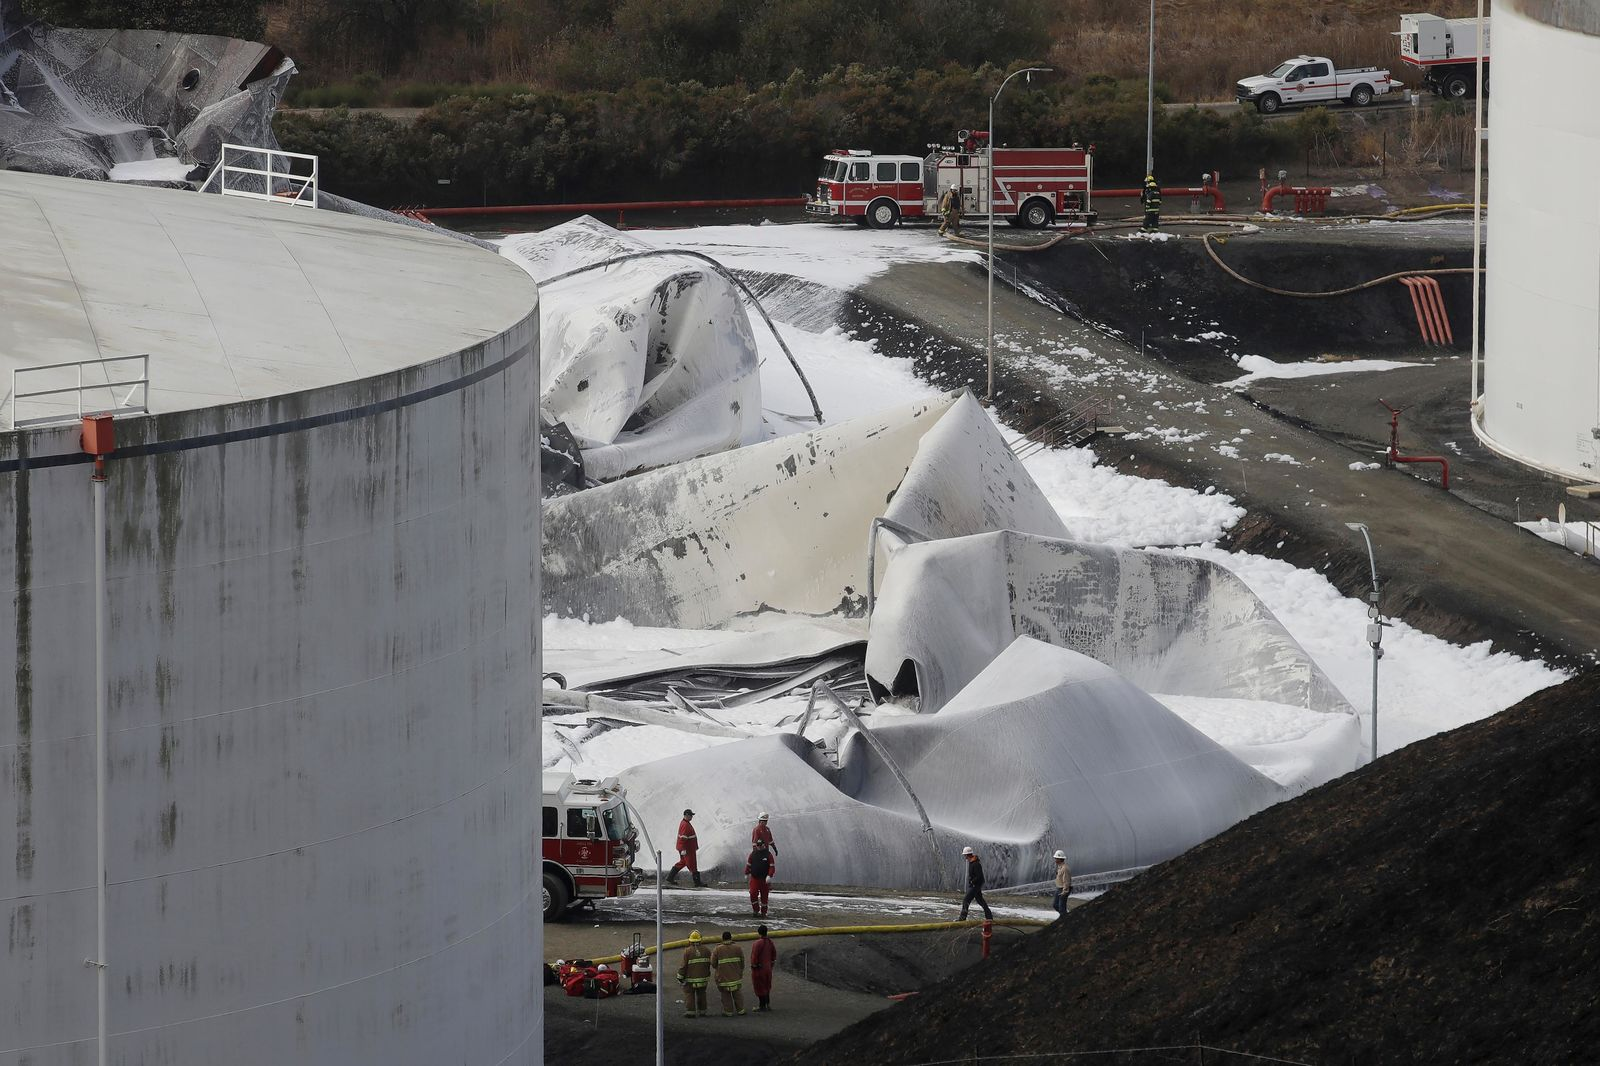 Fire and emergency crews walk past damage at NuStar Energy fuel storage facility, Wednesday, Oct. 16, 2019, in Crockett, Calif. Officials are trying to determine if a 4.5 magnitude earthquake the day before triggered an explosion at the facility. (AP Photo/Jeff Chiu)